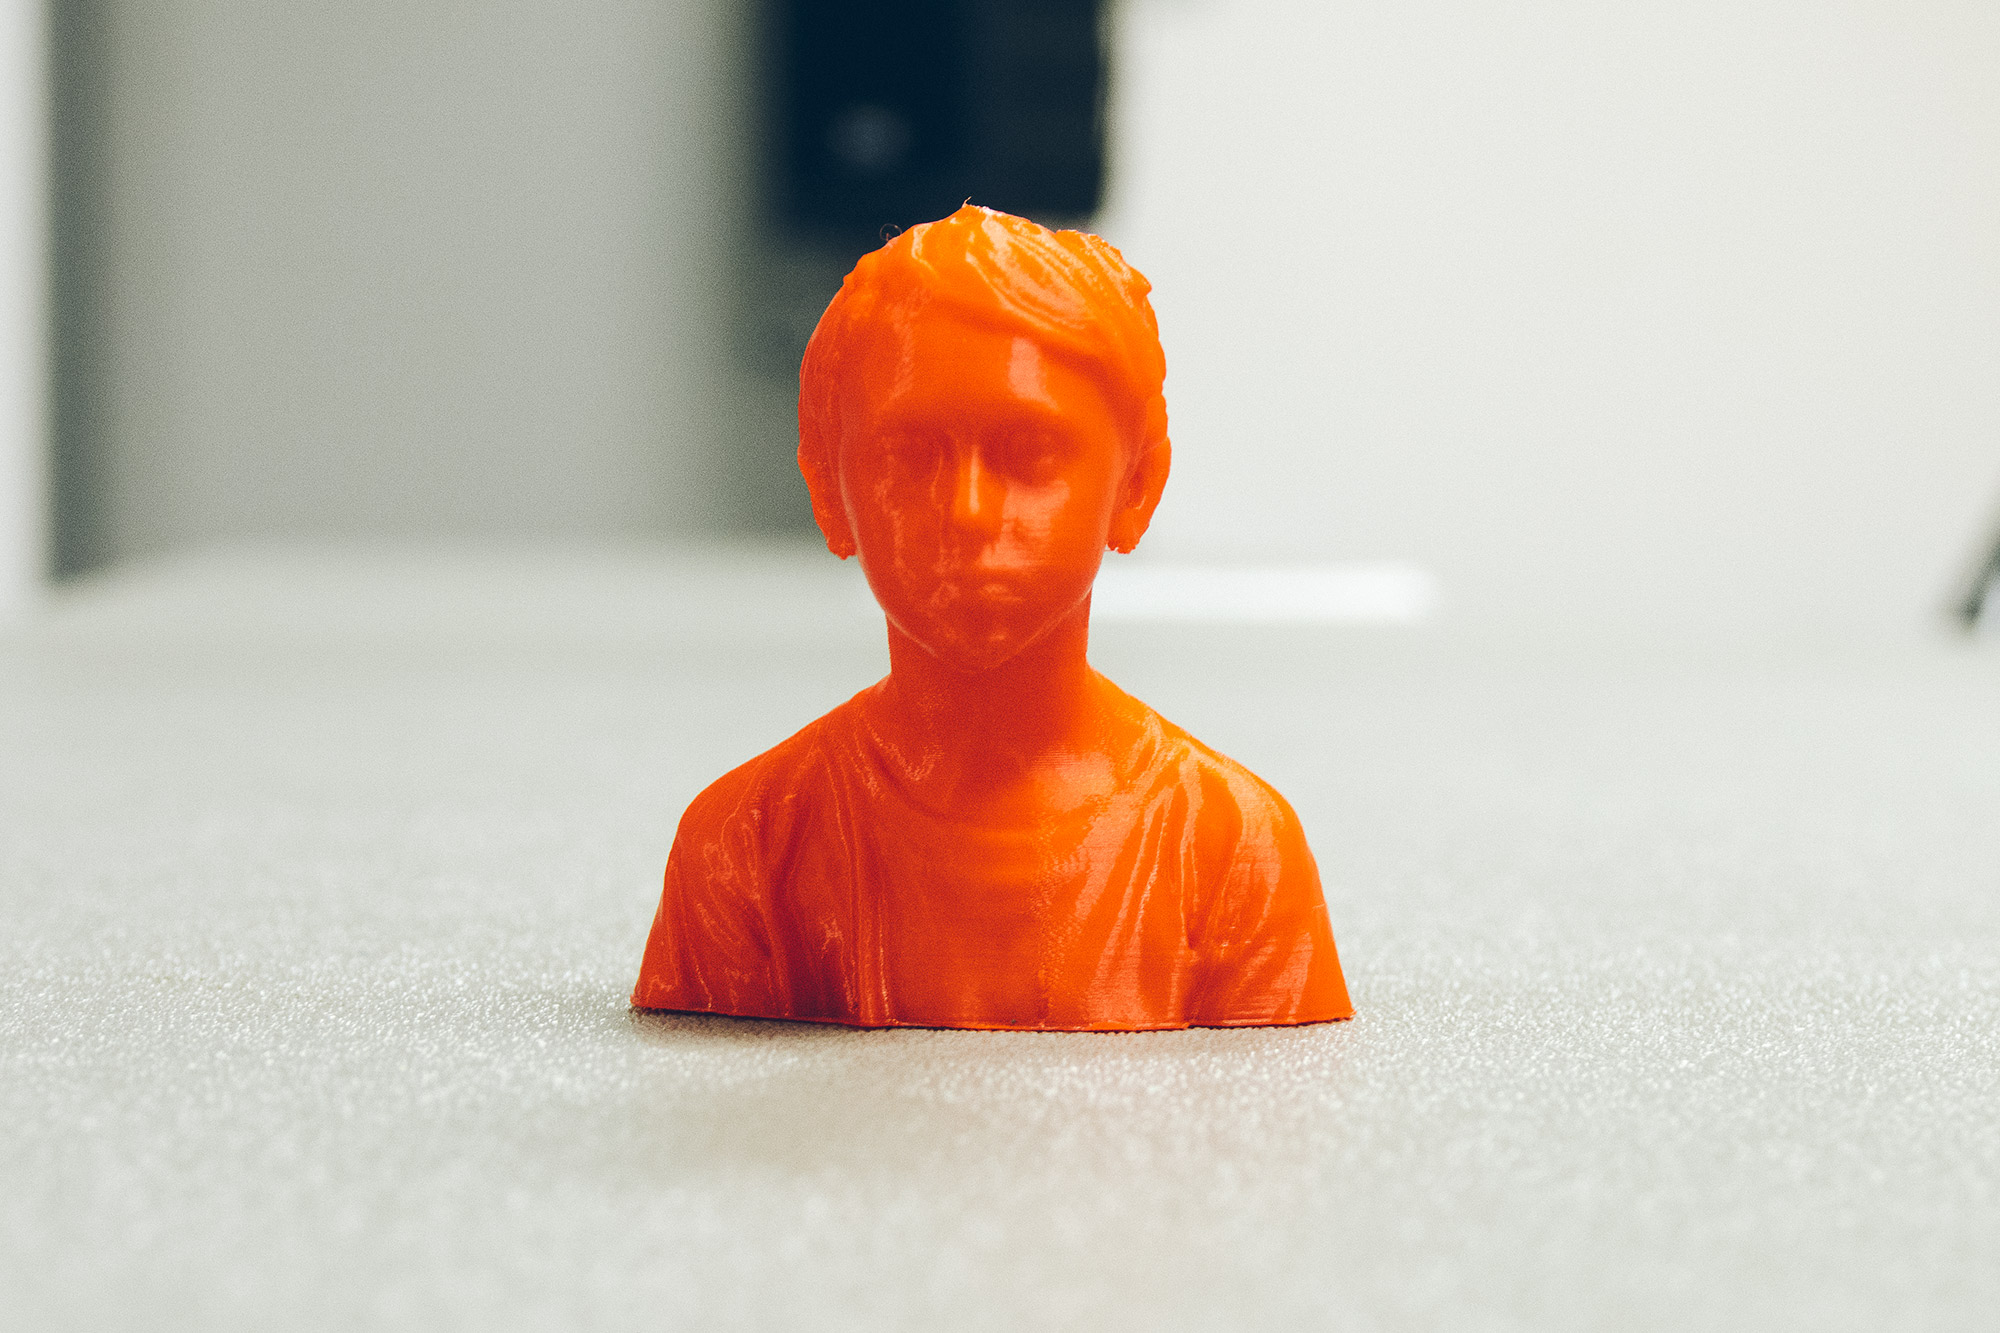 3D portrait of a young person